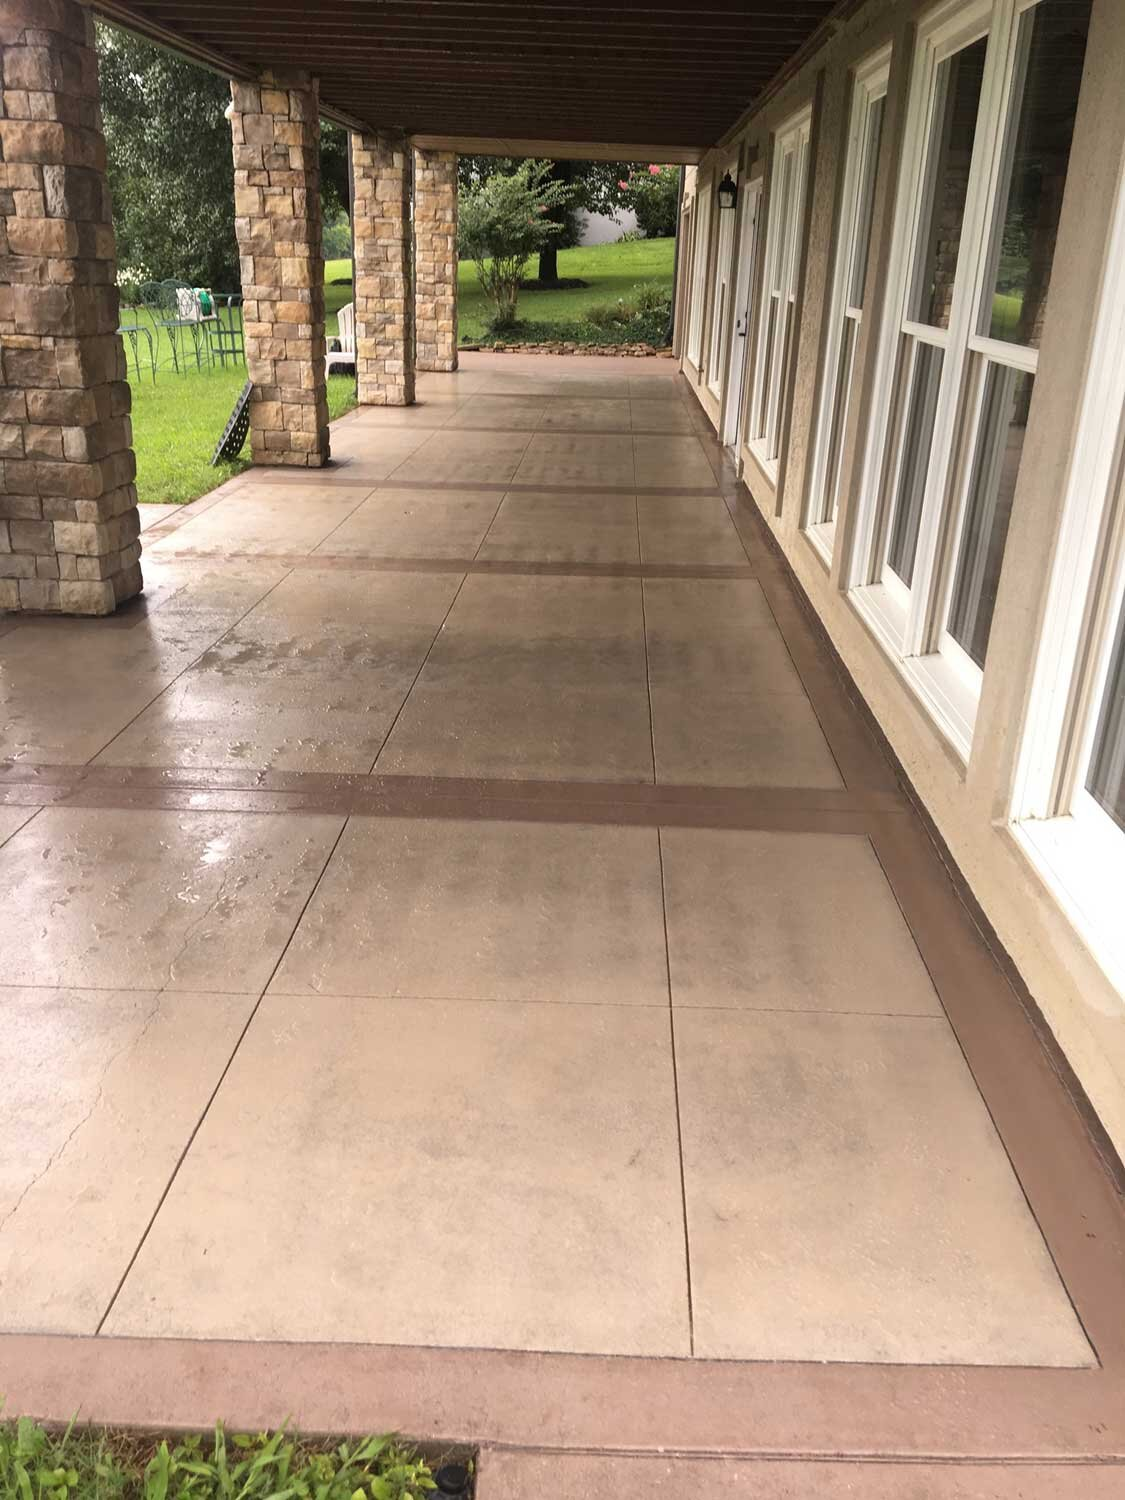 Concrete was poured in 1992. Revived by adding decorative saw cuts, and tinta-seal.